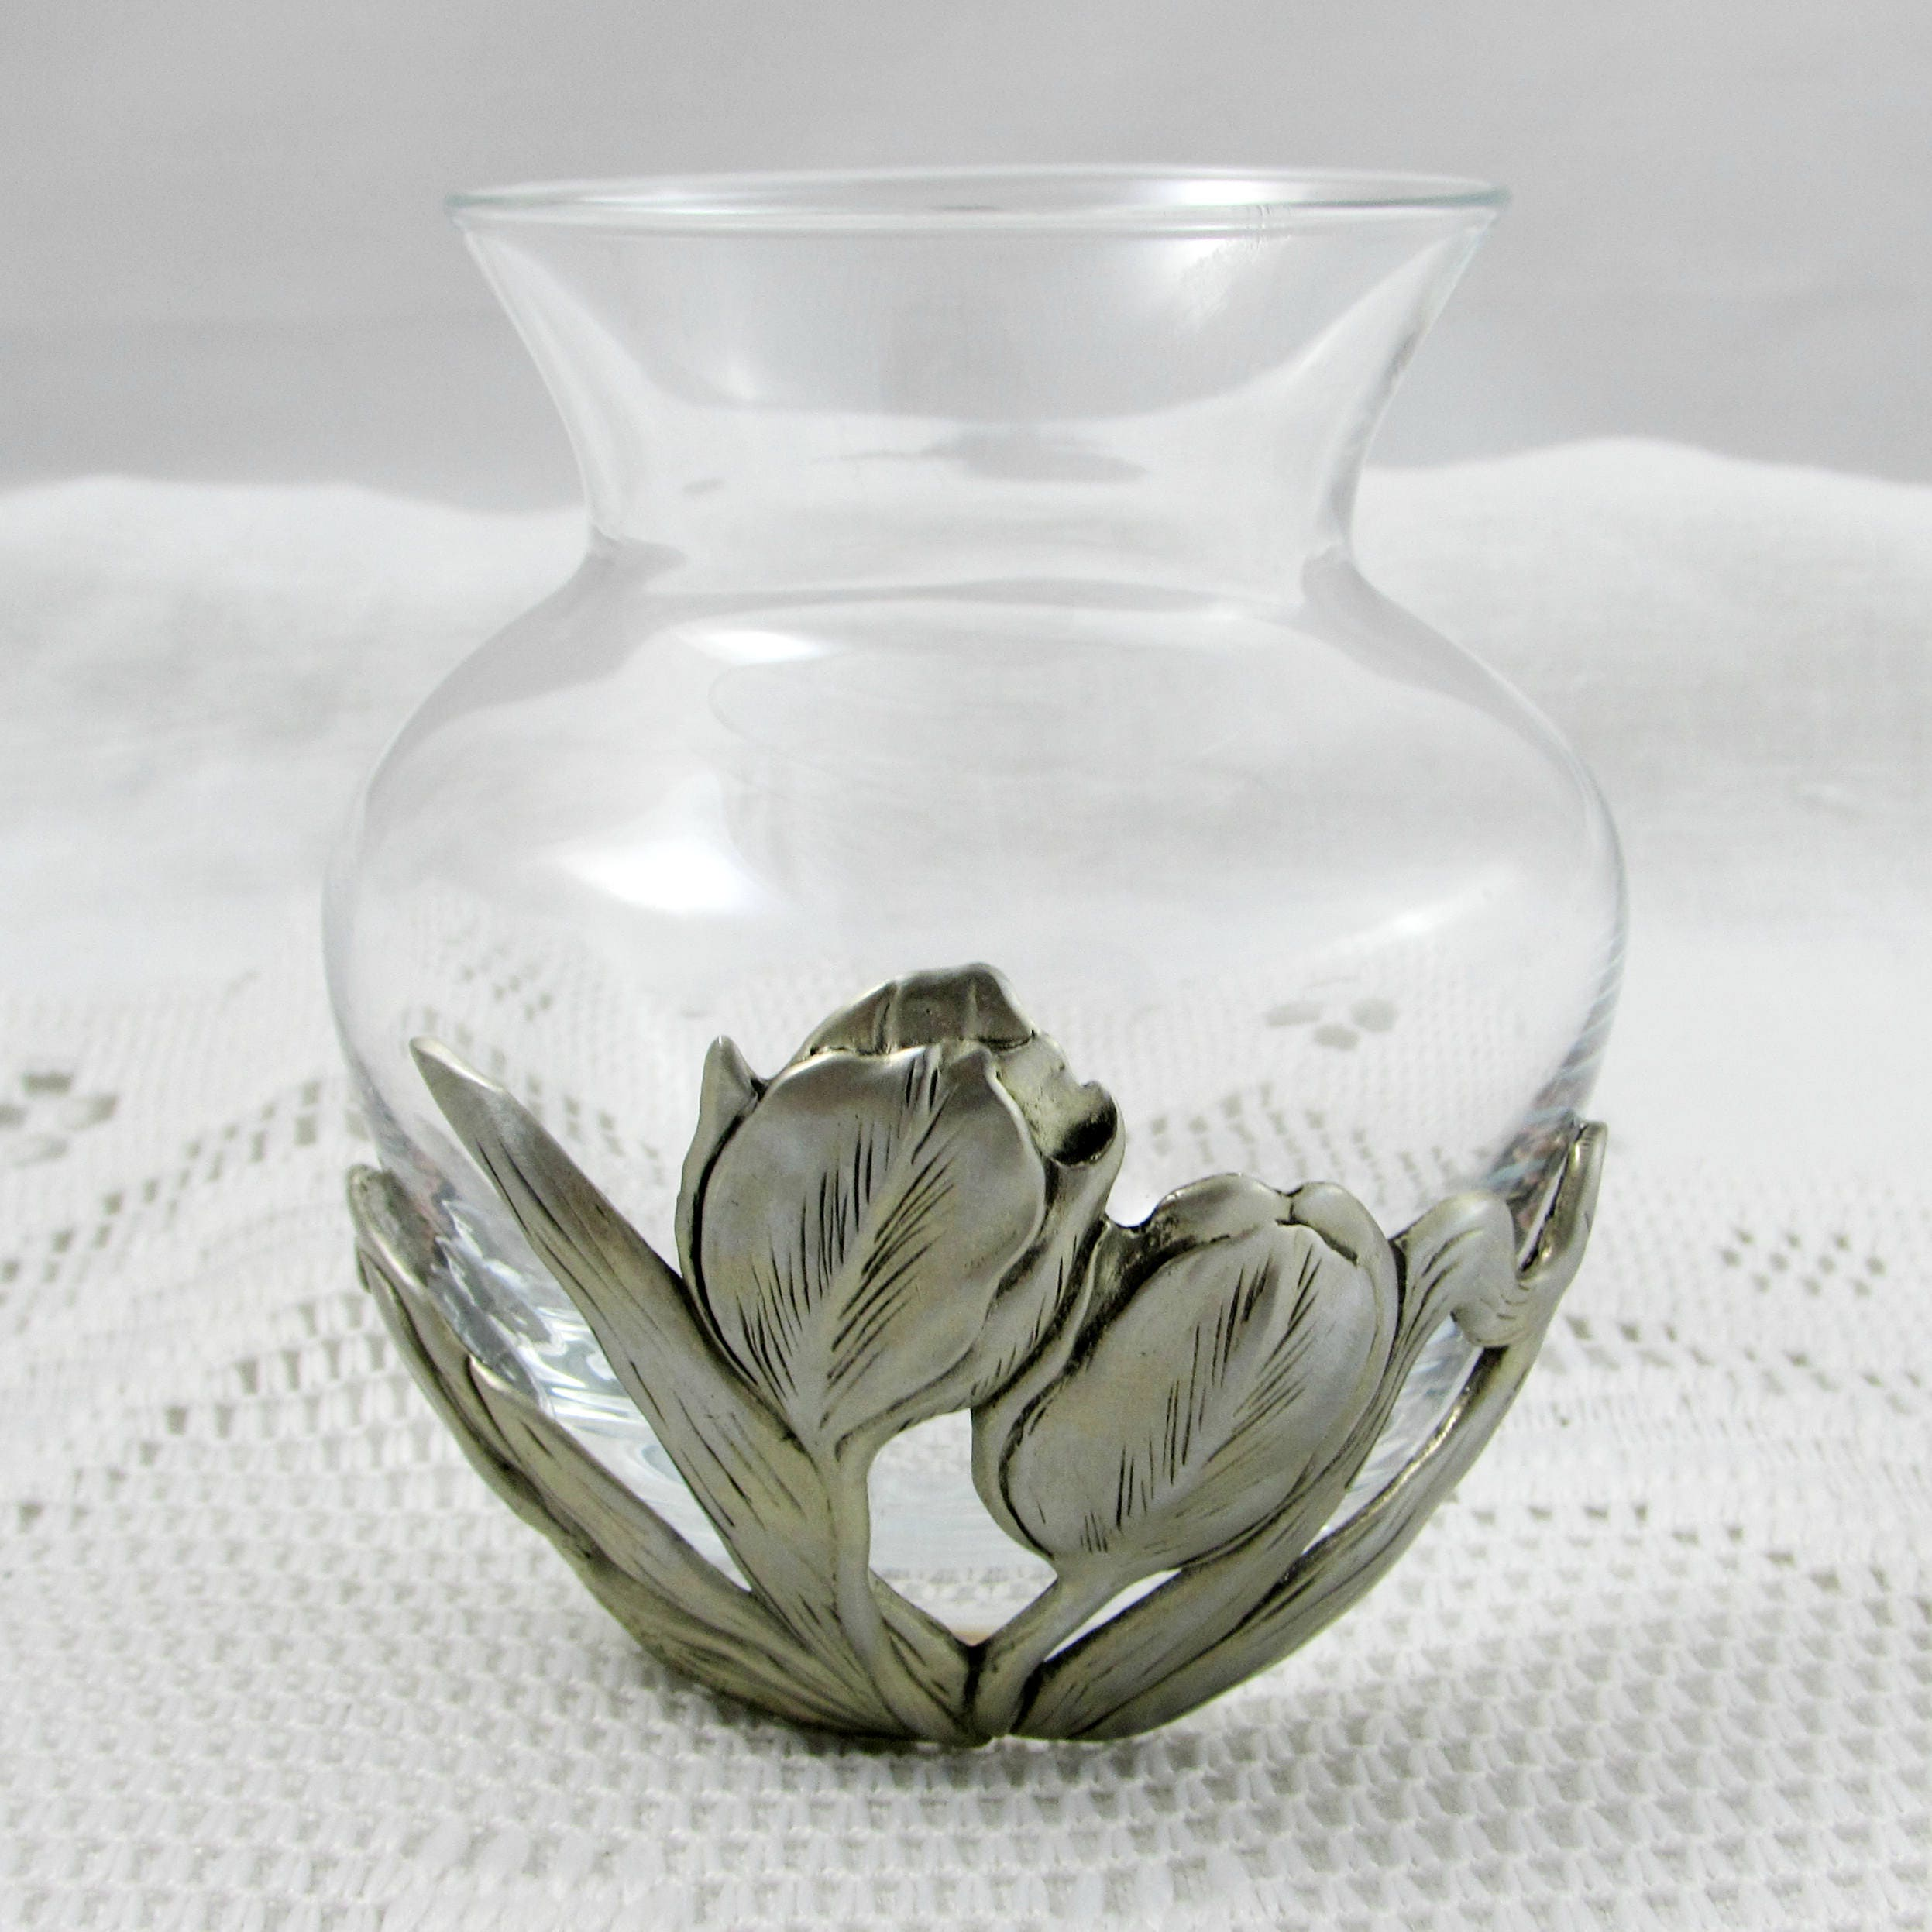 Seagull pewter flower vase tulips small vase vintage 325 inch seagull pewter flower vase tulips small vase vintage 325 inch tall glass vase reviewsmspy